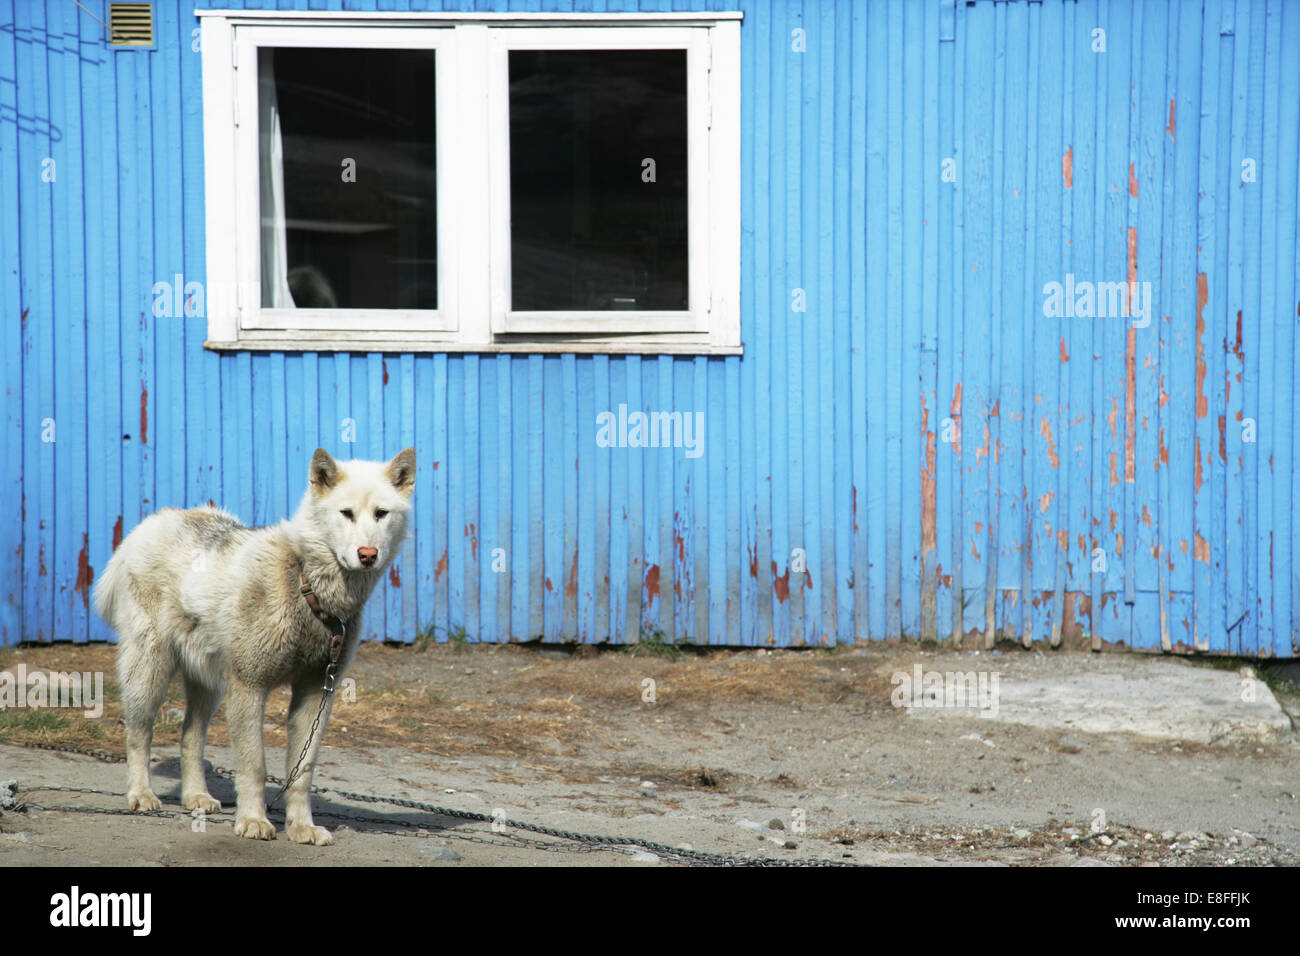 Husky dog standing outside building, Greenland - Stock Image